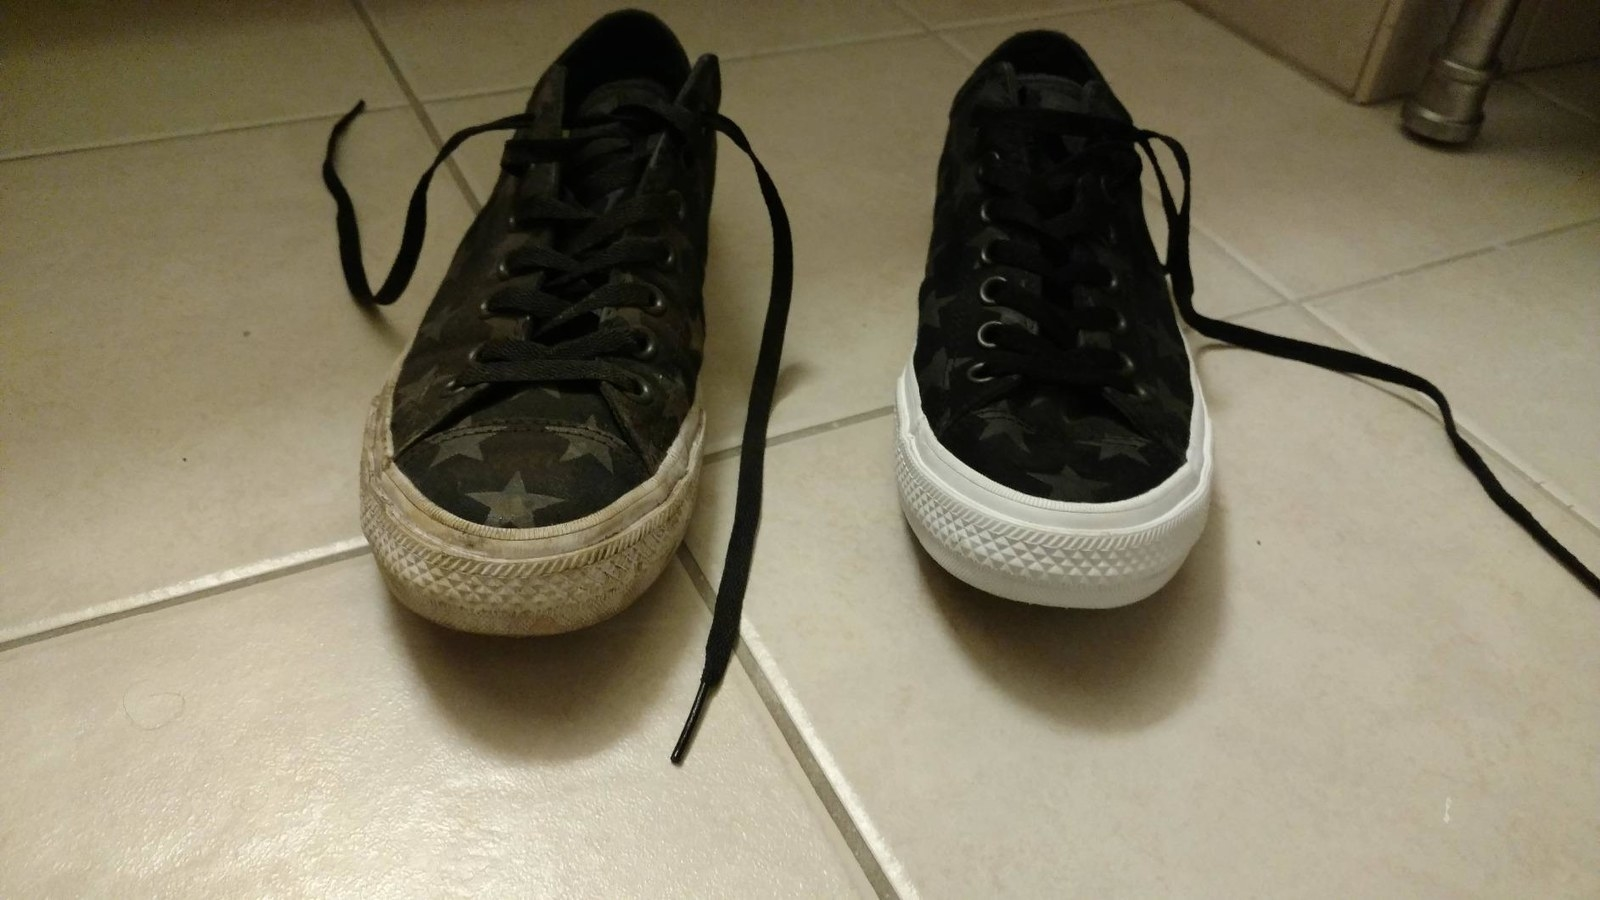 A pair of sneakers, the left one with completely dirty soles, and the right with white, new-looking soles